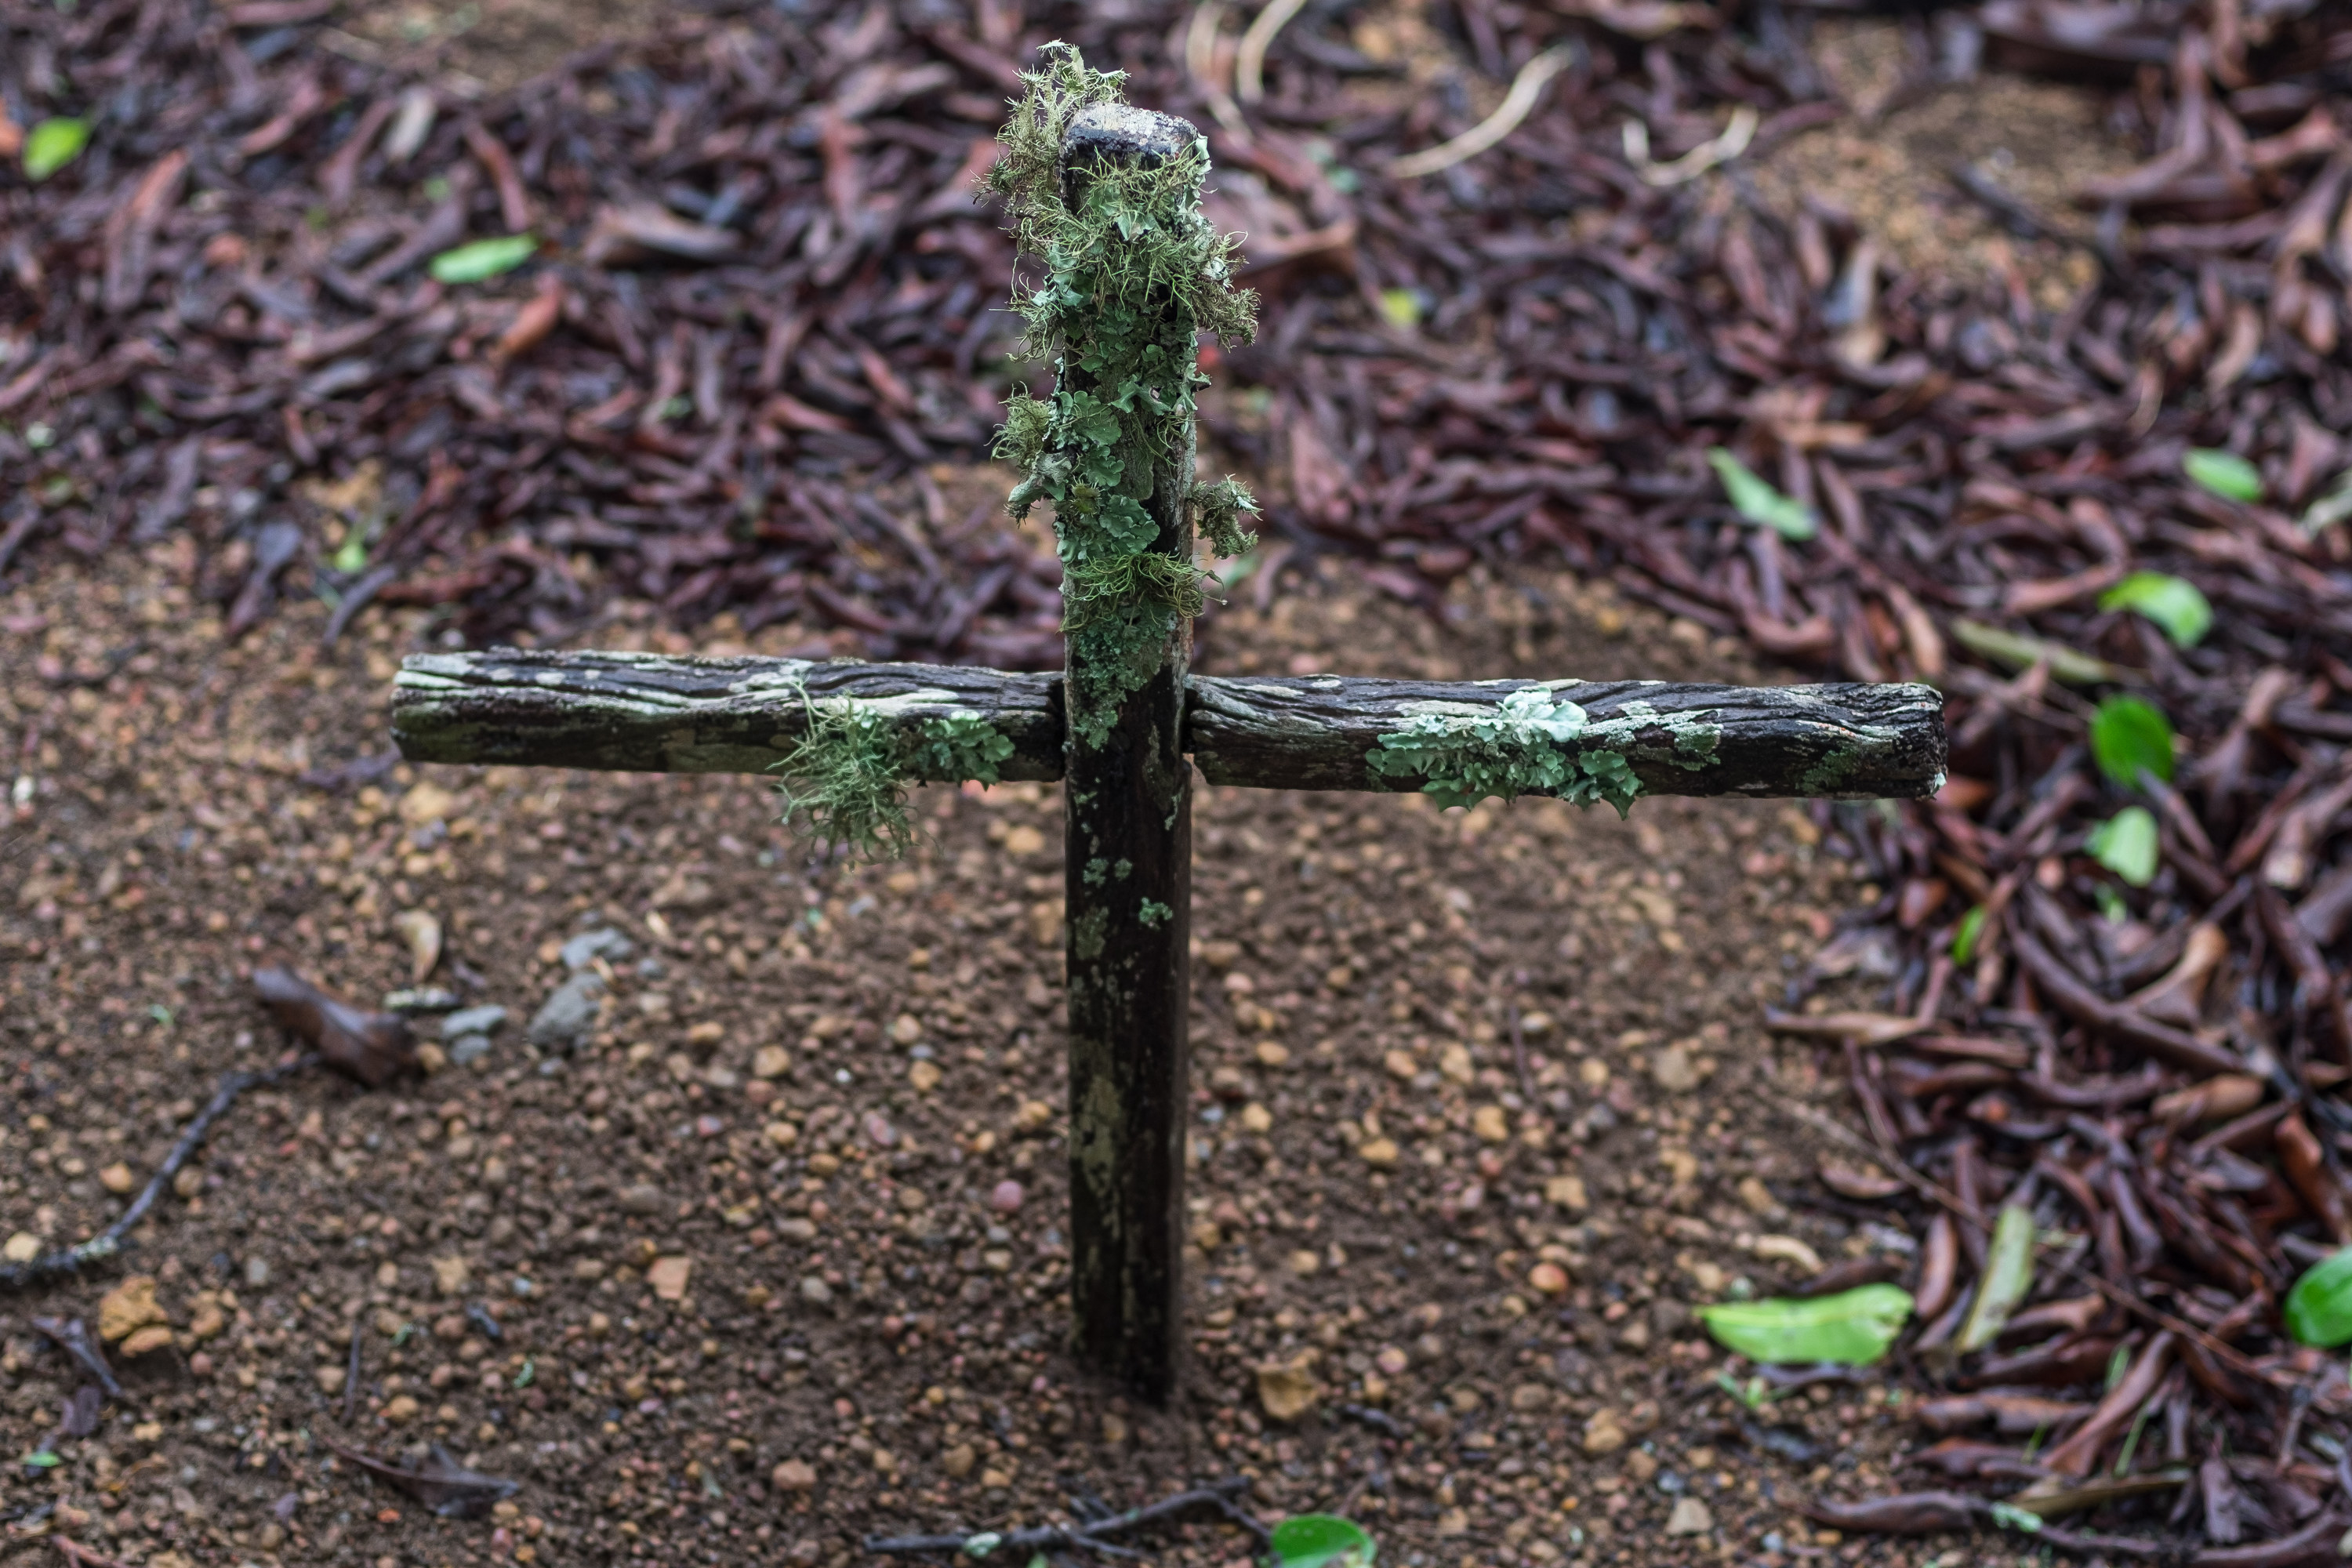 A simple small cross made of two sticks